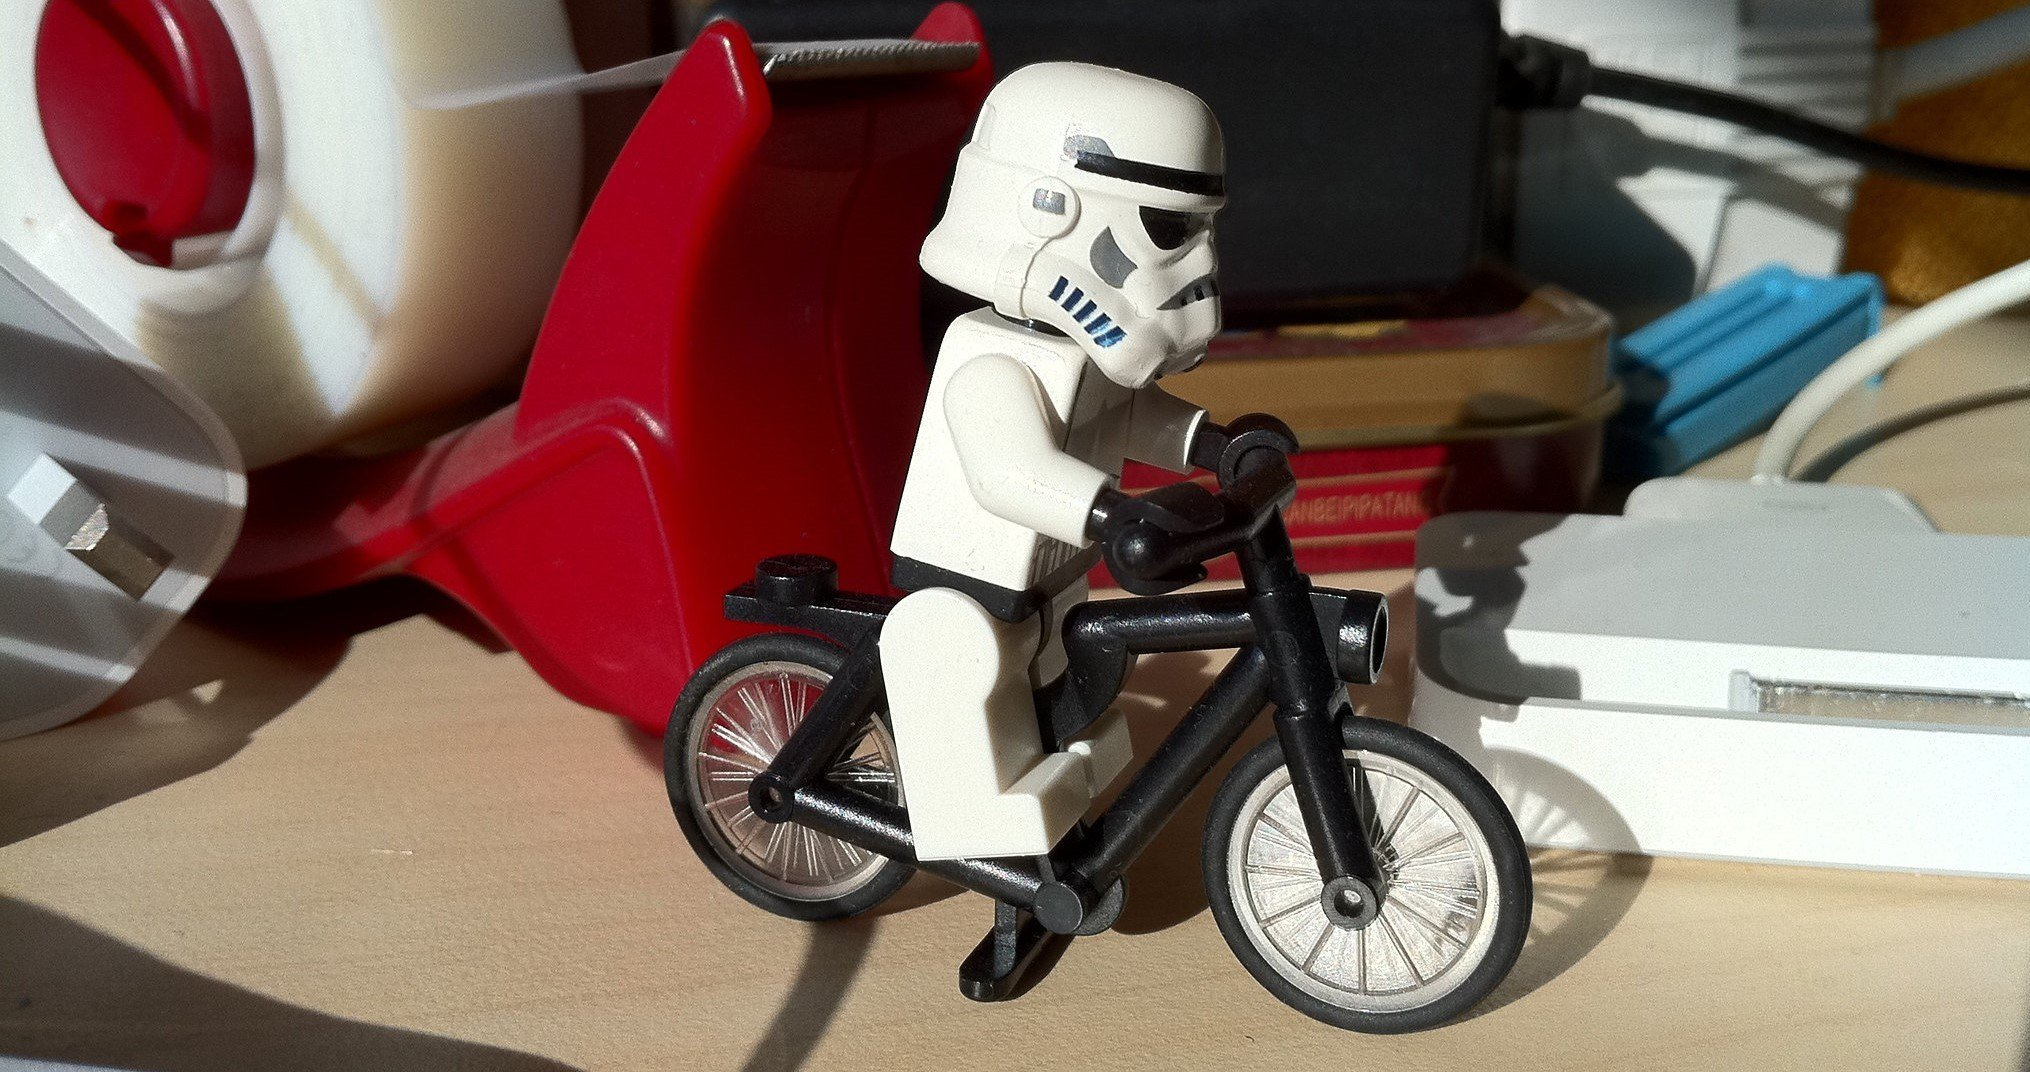 A LEGO Stormtrooper on a bike